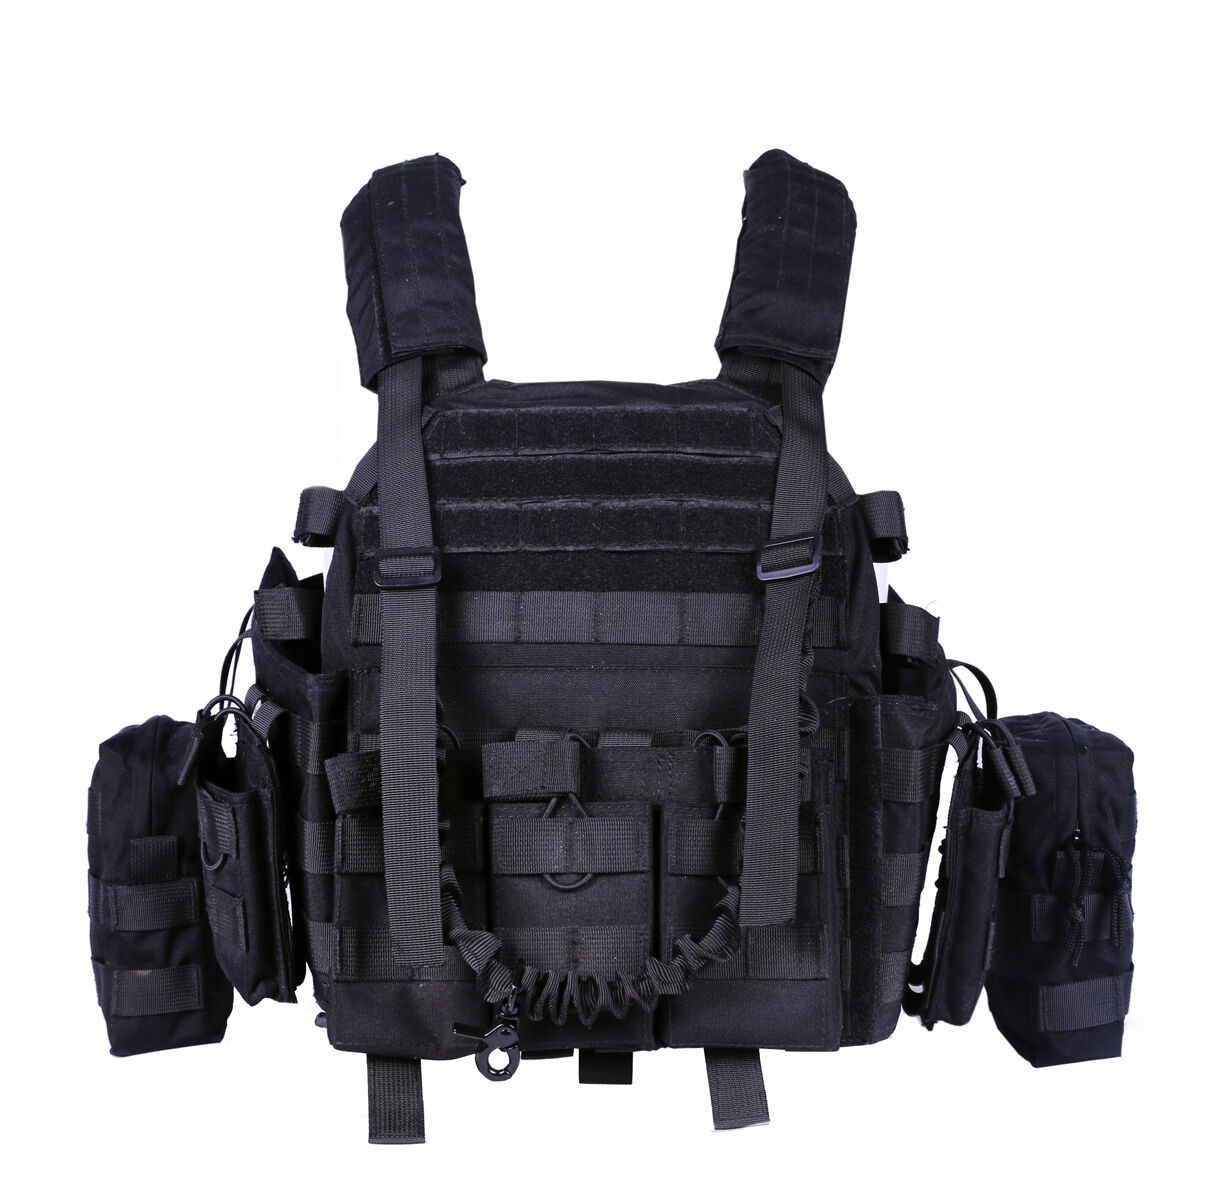 Military Military Military Carrier Outdoor Tactical Sports MOLLE Gear Field Swat Adjustable Vest 0 6ab0aa